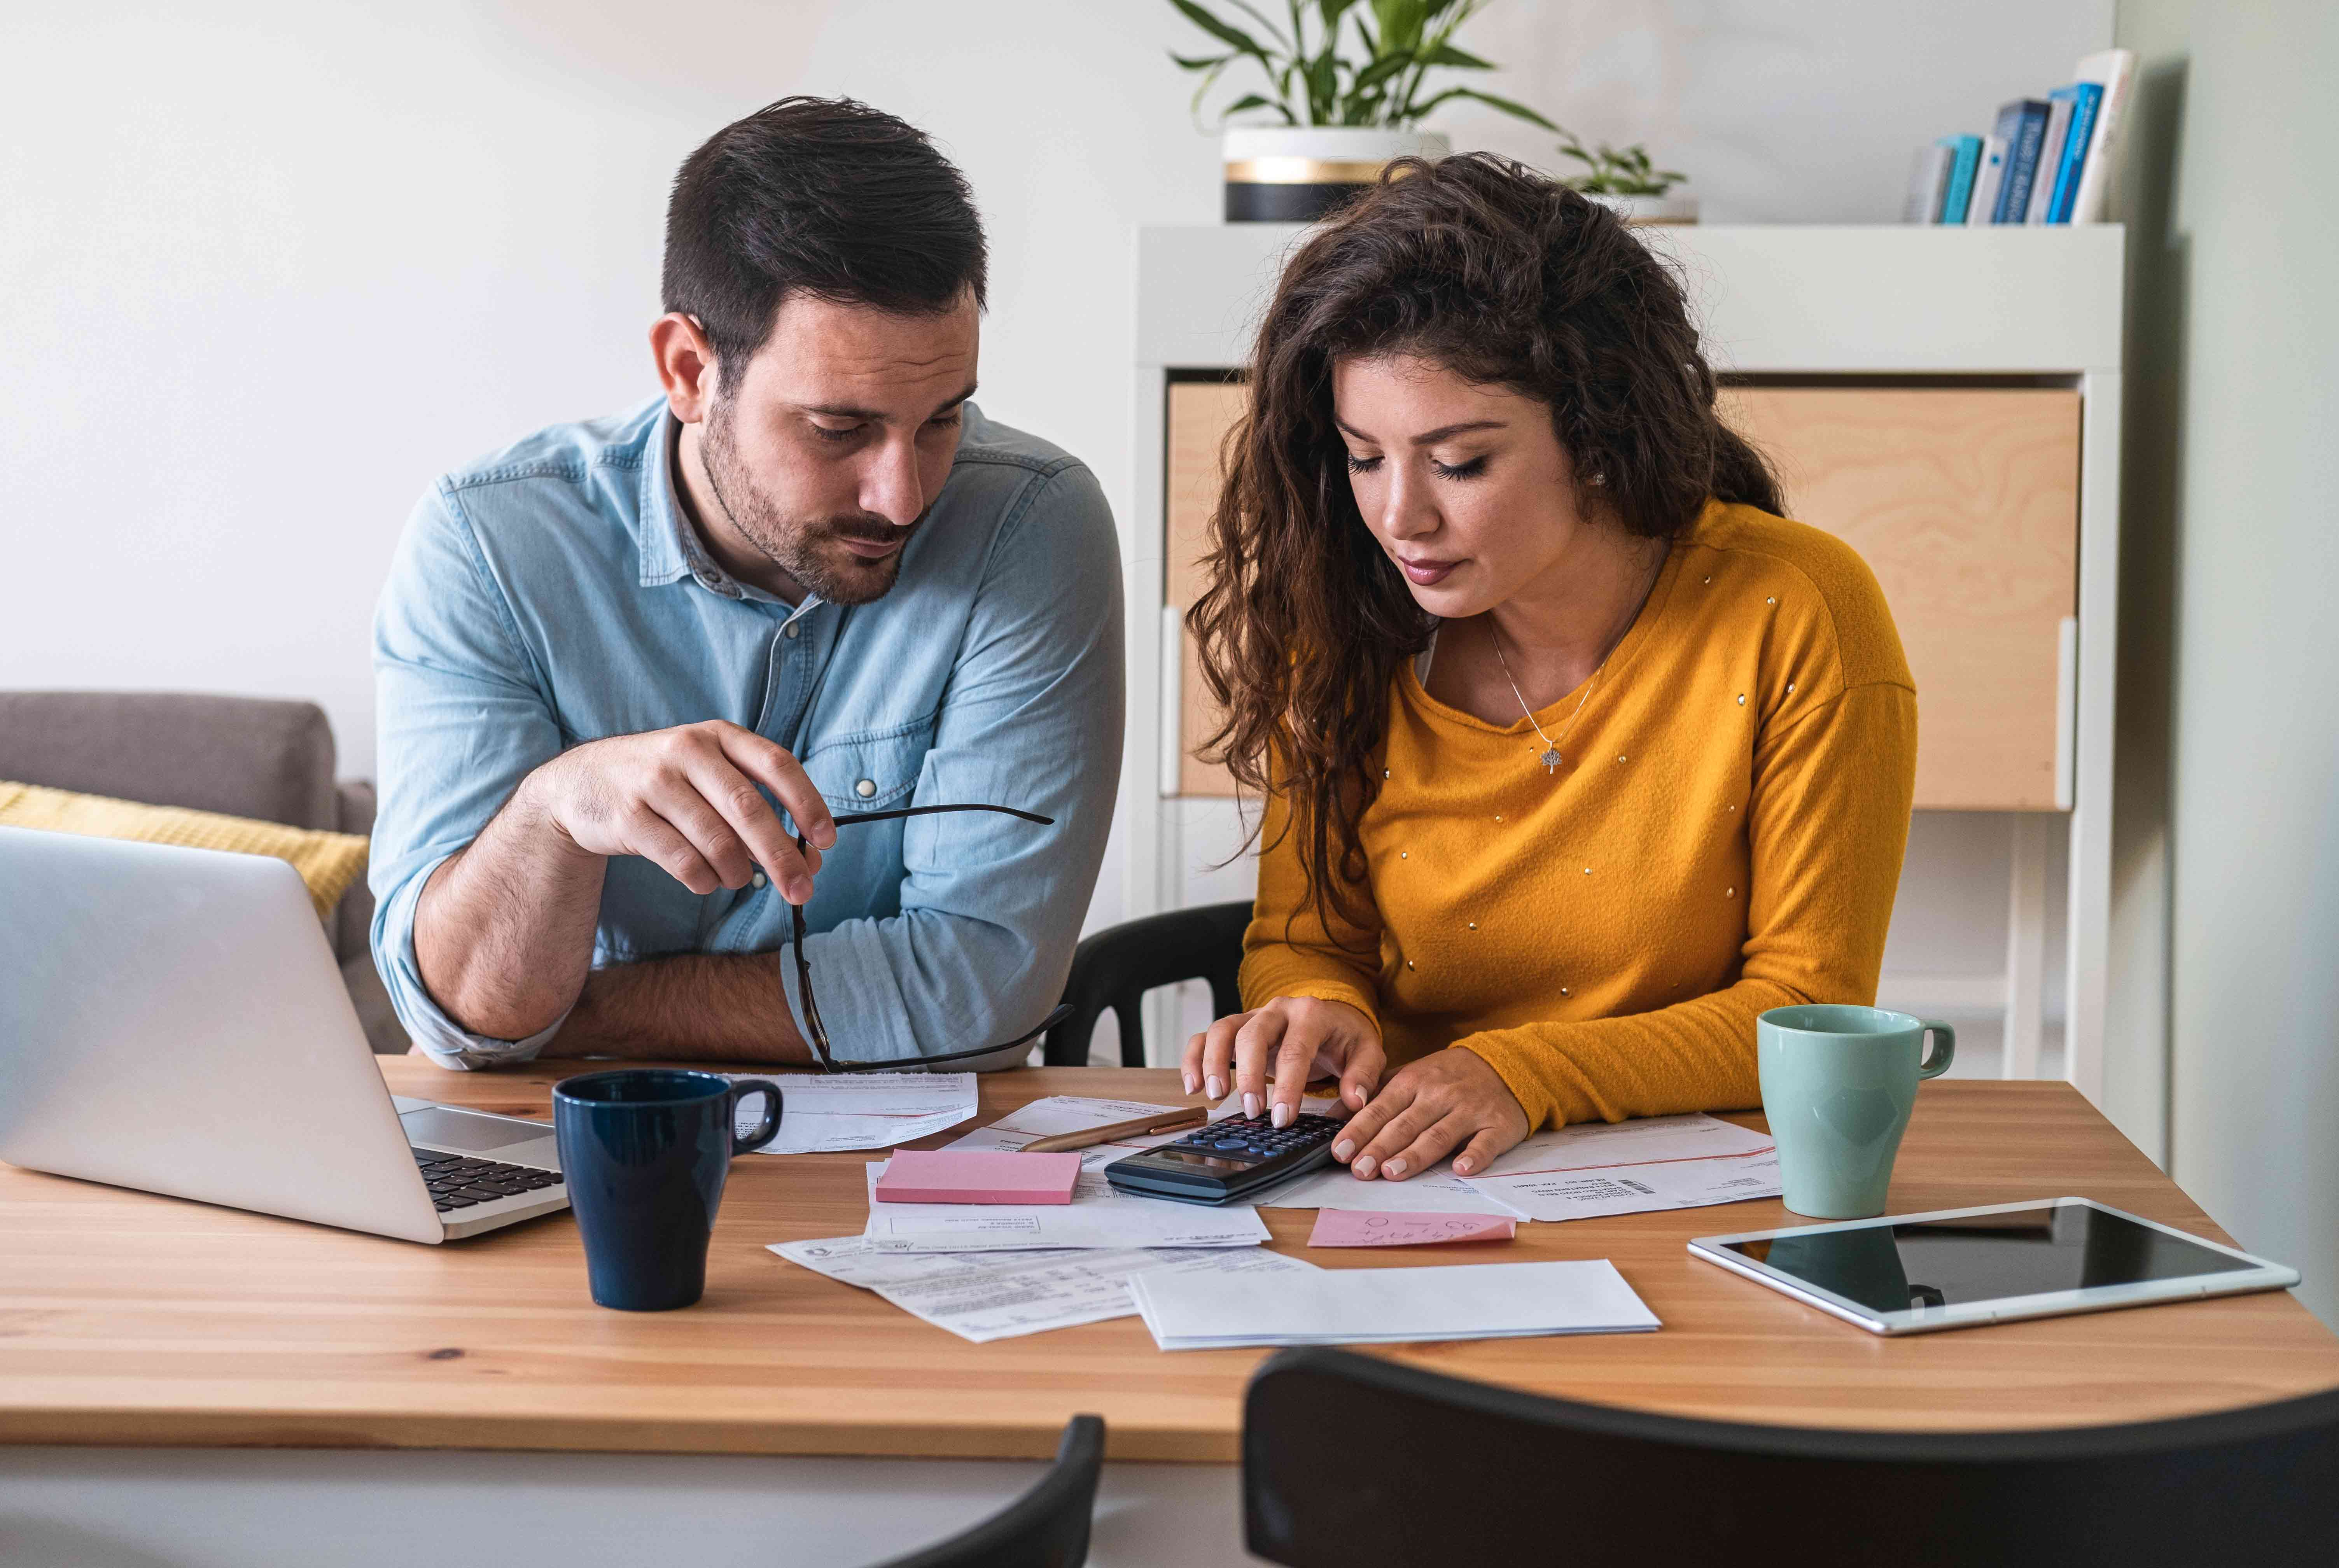 Can Landlords And Tenants Work Together To Save On Rising Utility Bills?